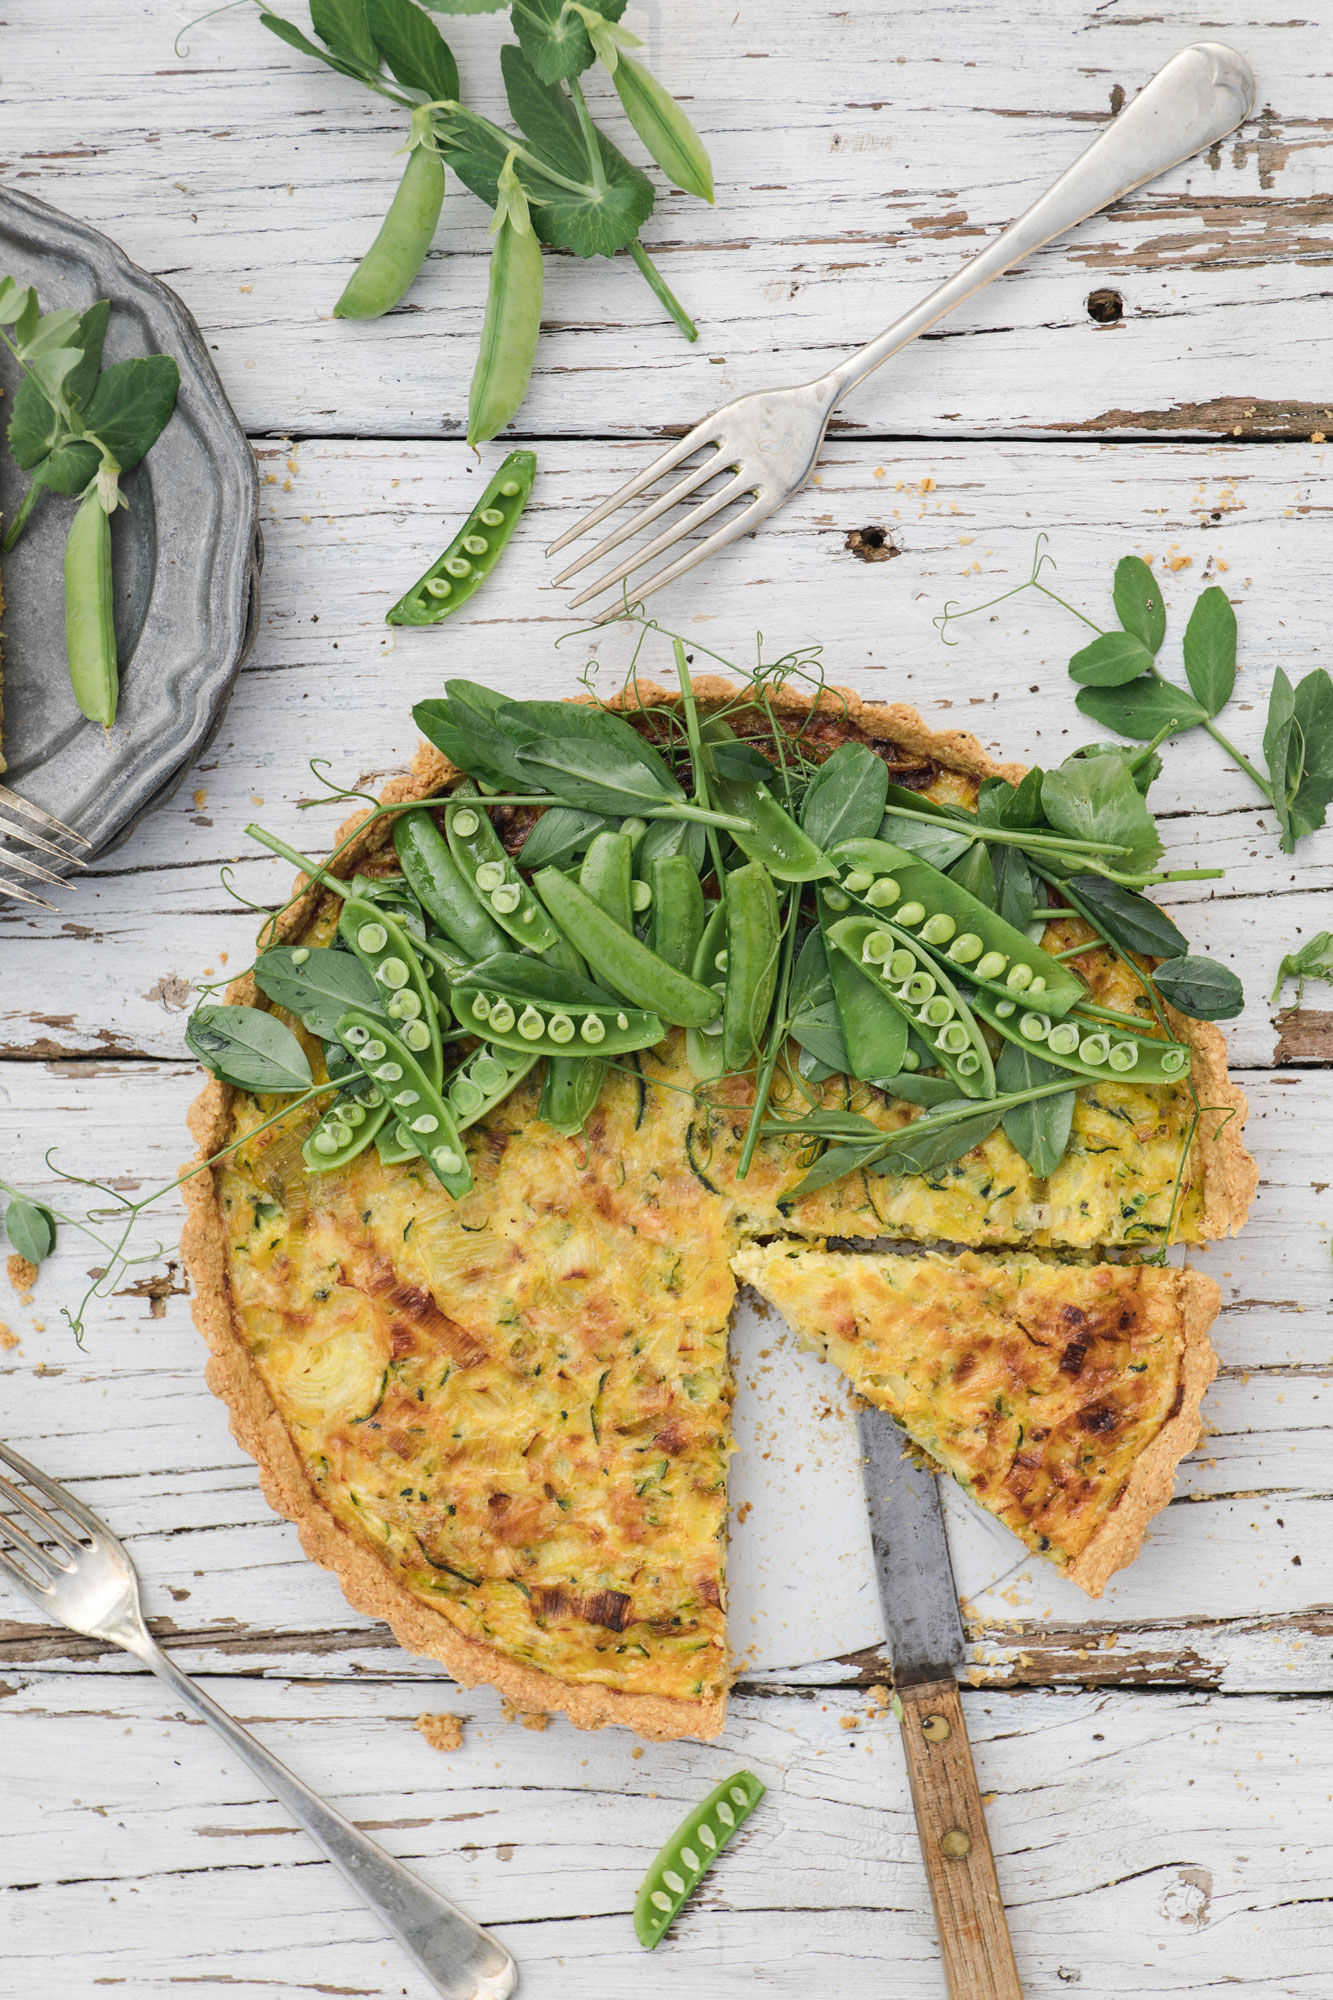 gluten free and vegetarian summer picnic tart with leek, cheddar and zucchini